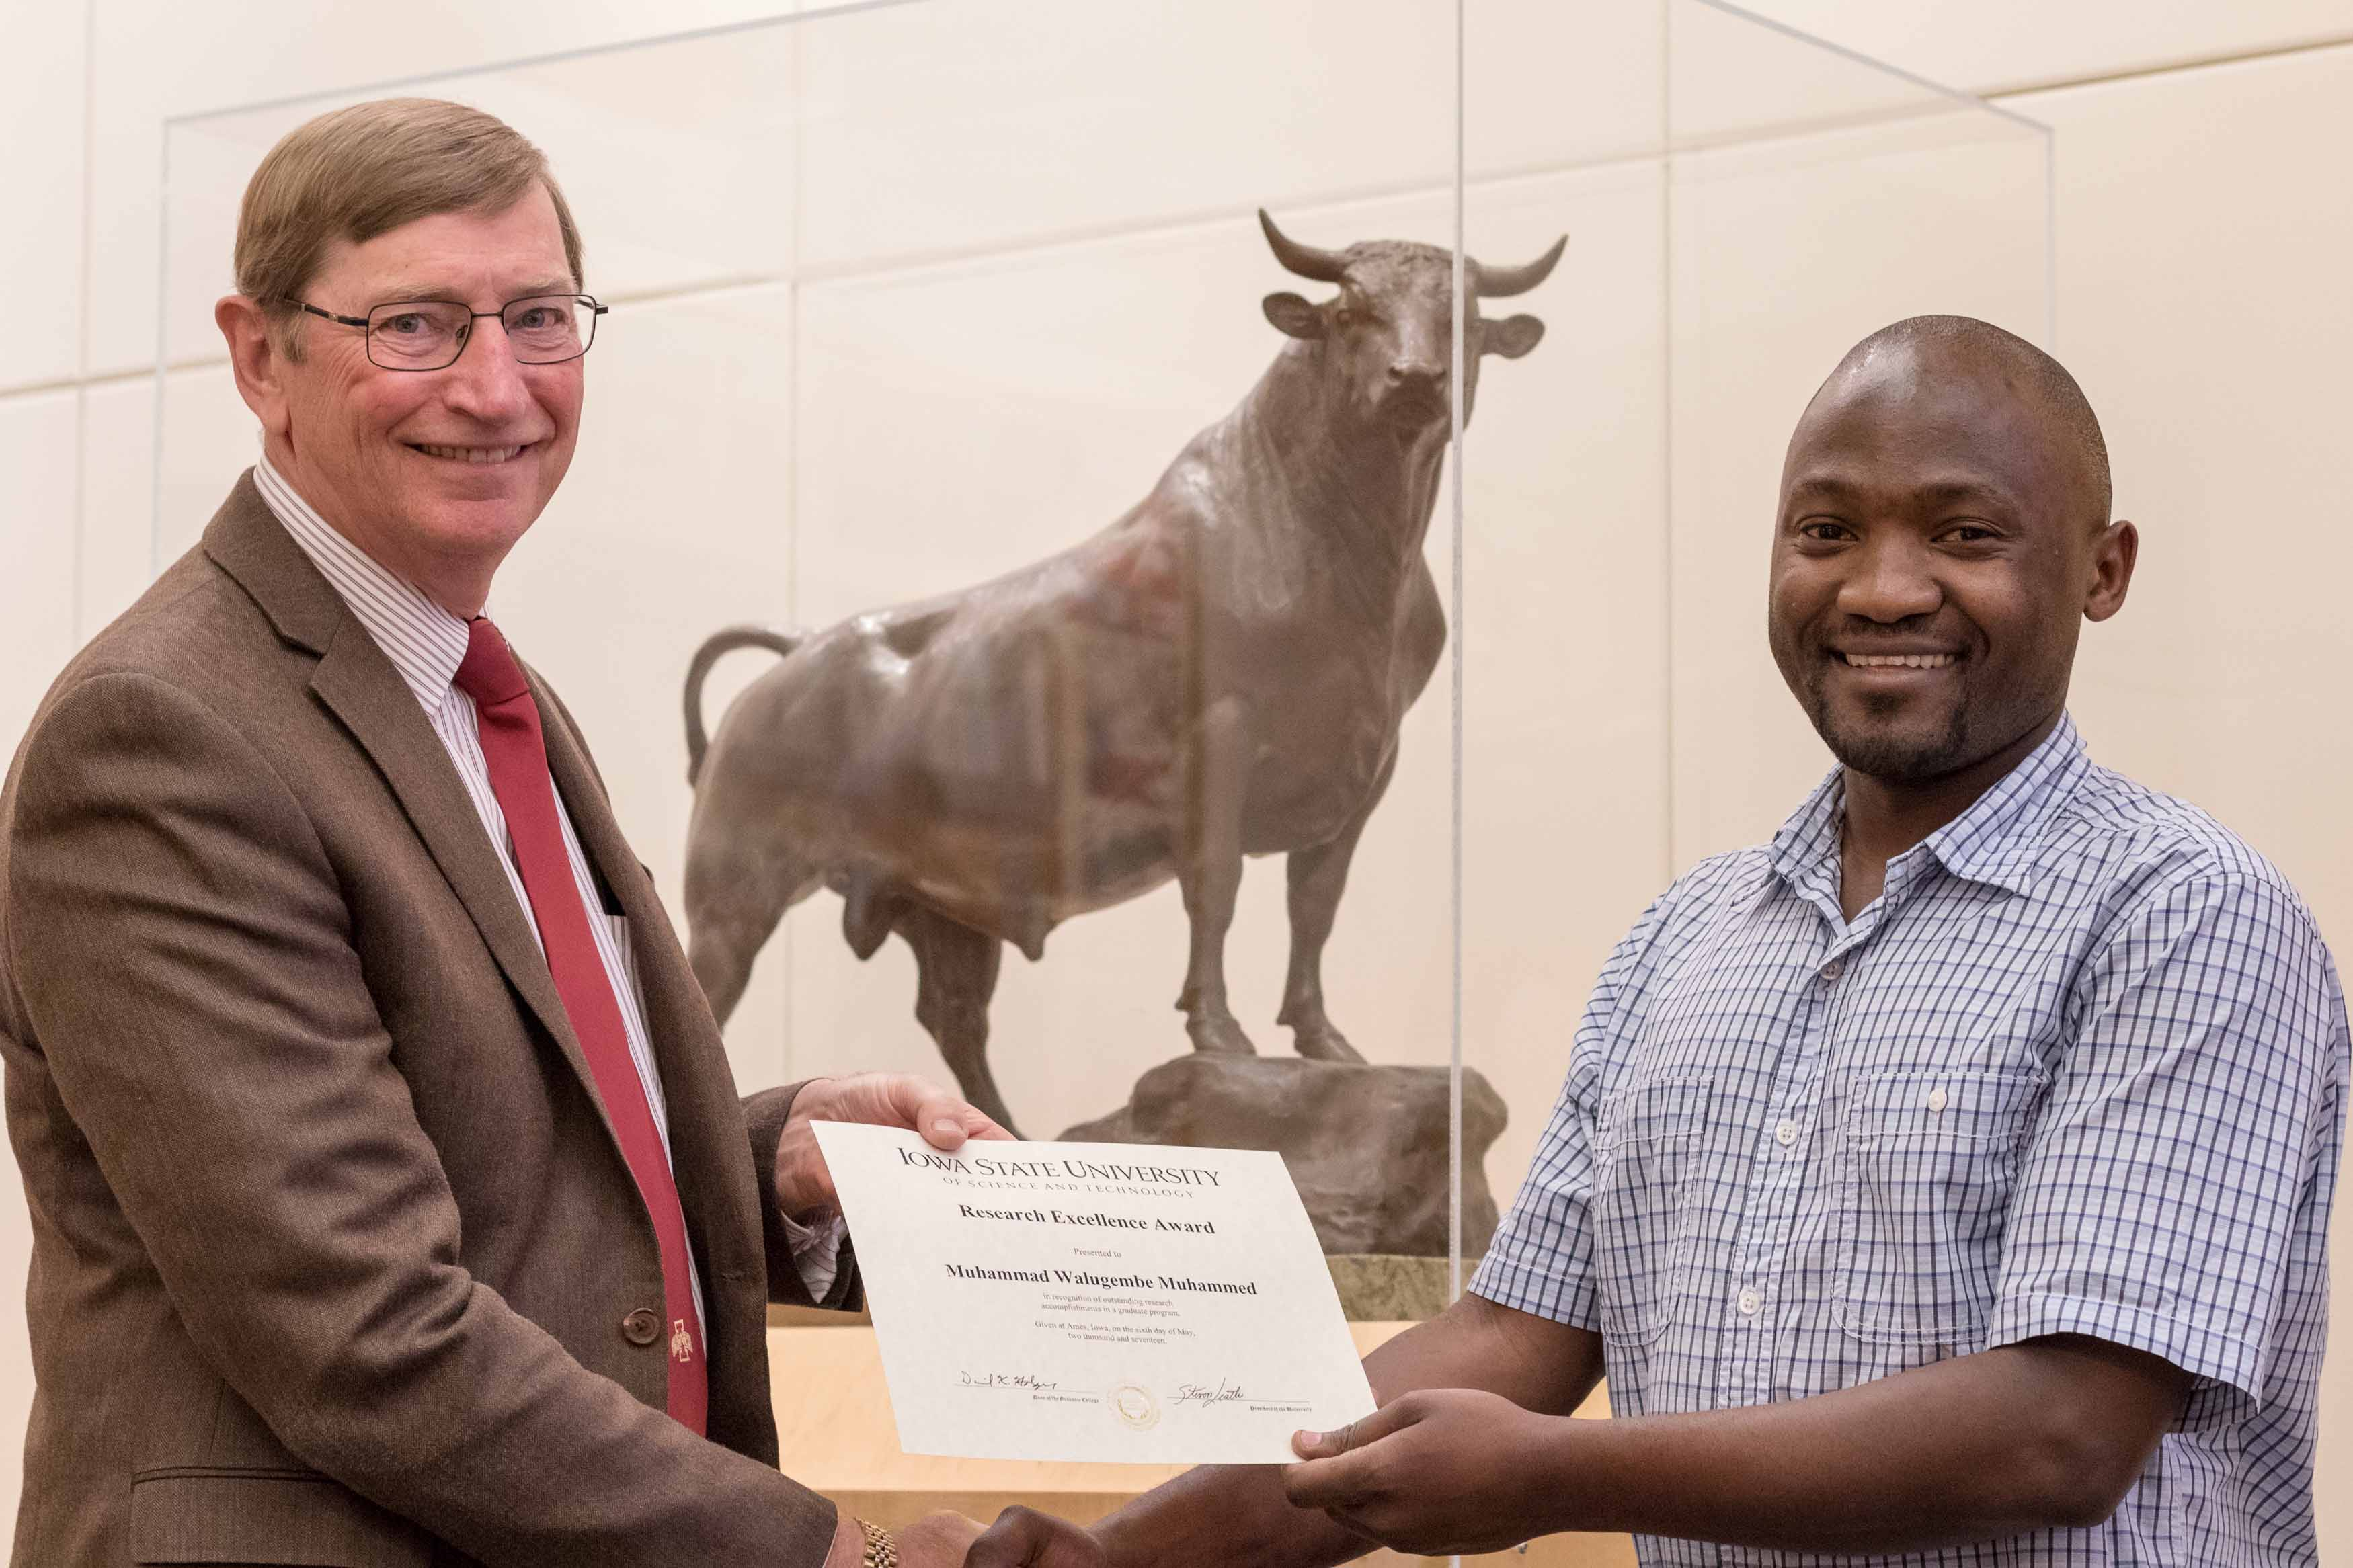 Department Chair Dr. Beermann and scholarship award winner Muhammad Walugembe